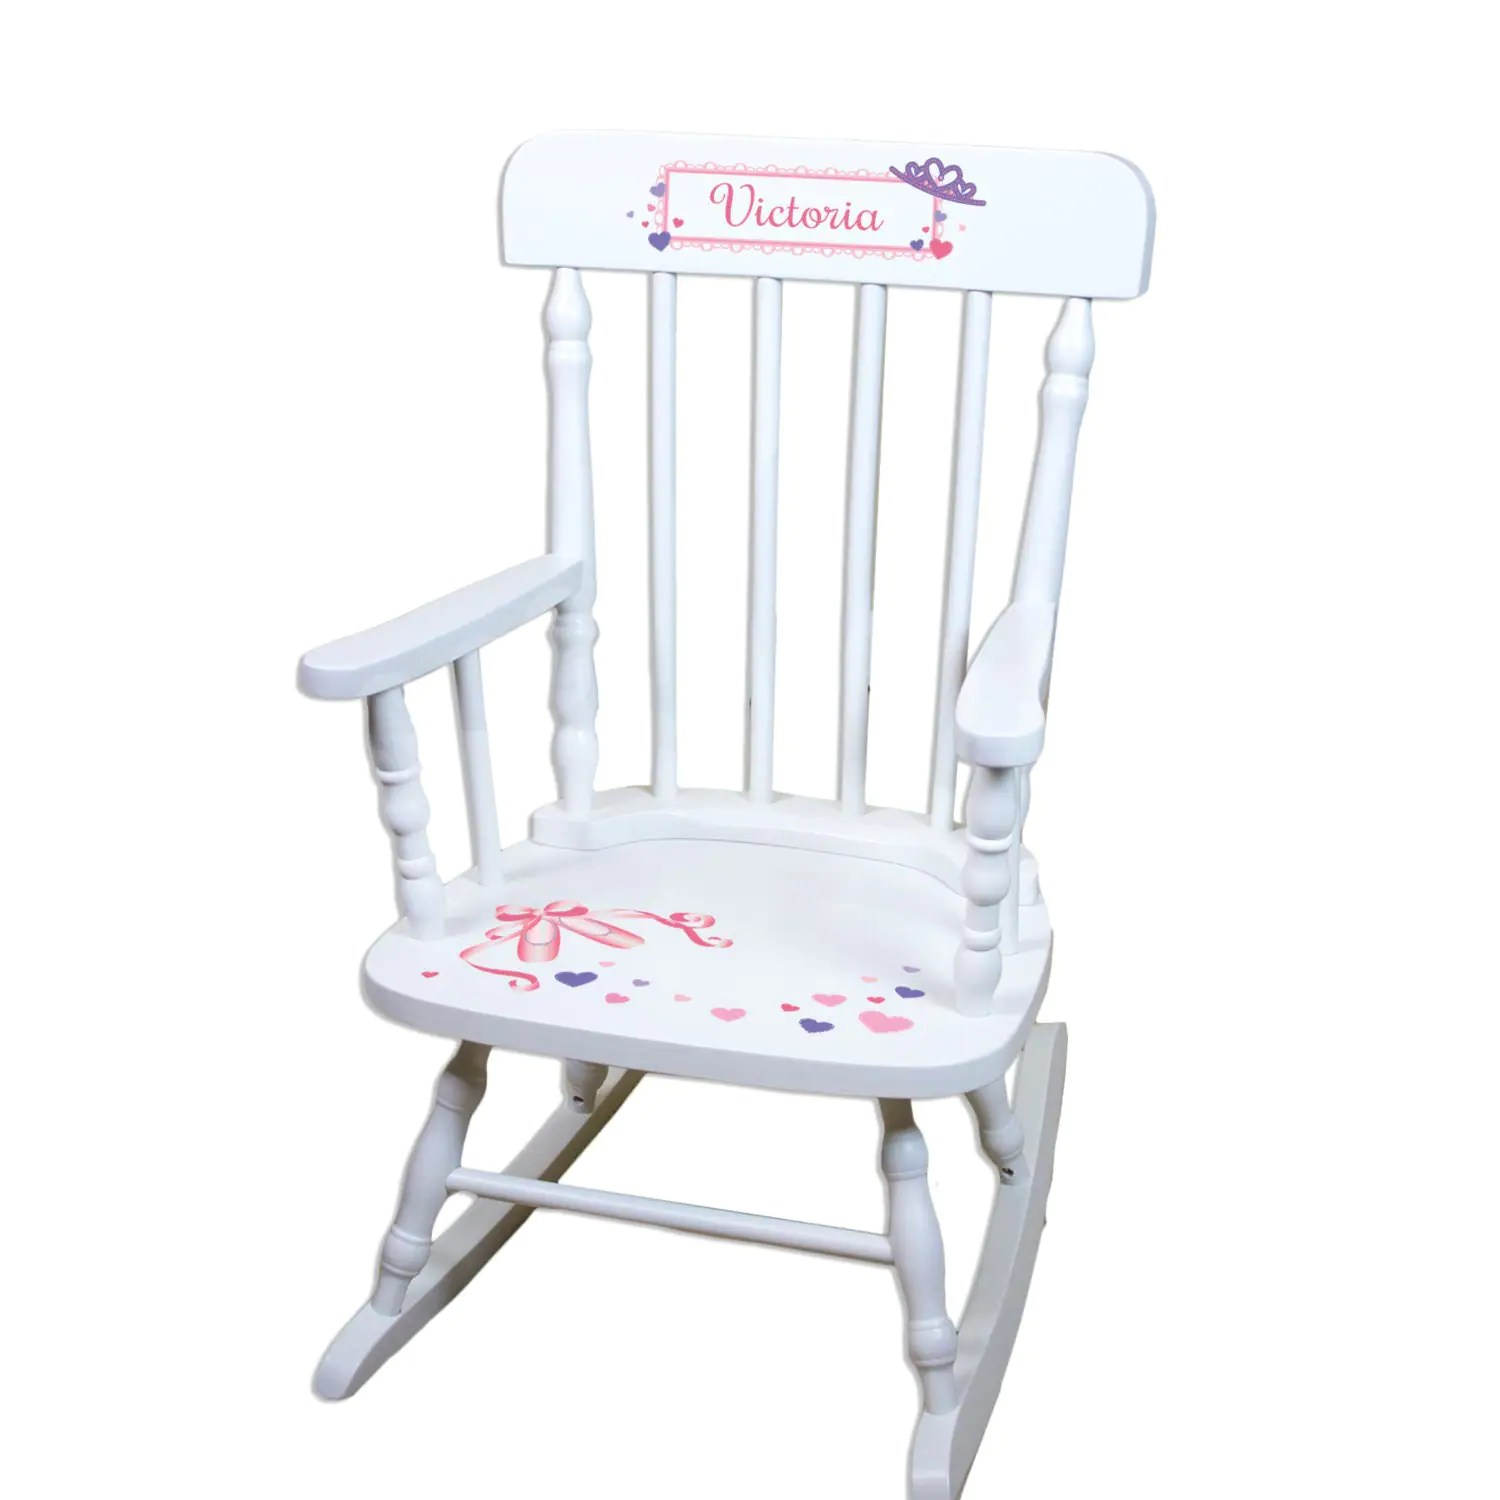 Rocking Chair White Personalized White Rocking Chair Girls Custom Rocker W Name